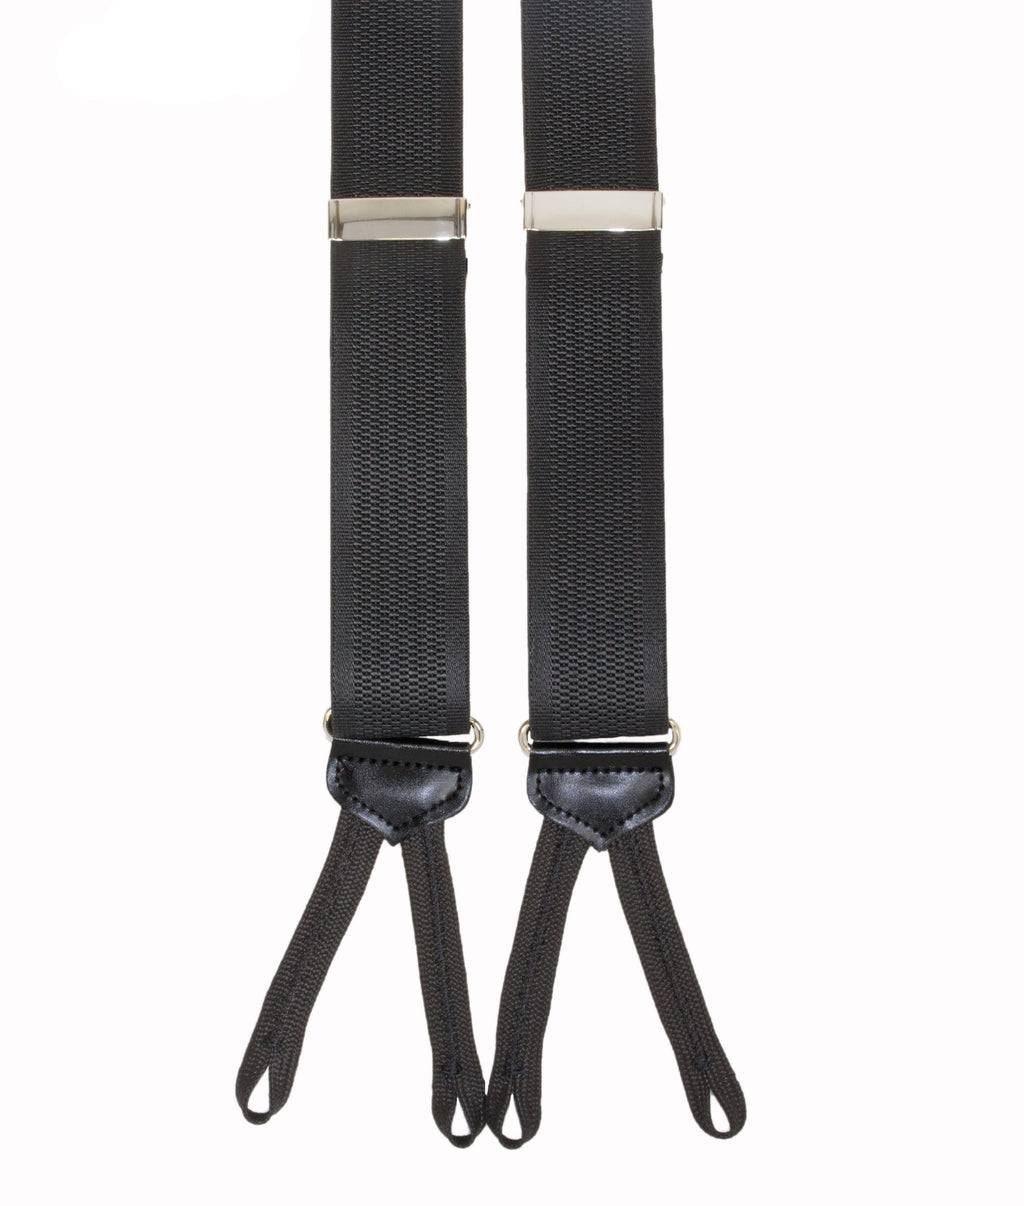 Style 51615 - 35MM Center tone on tone suspender